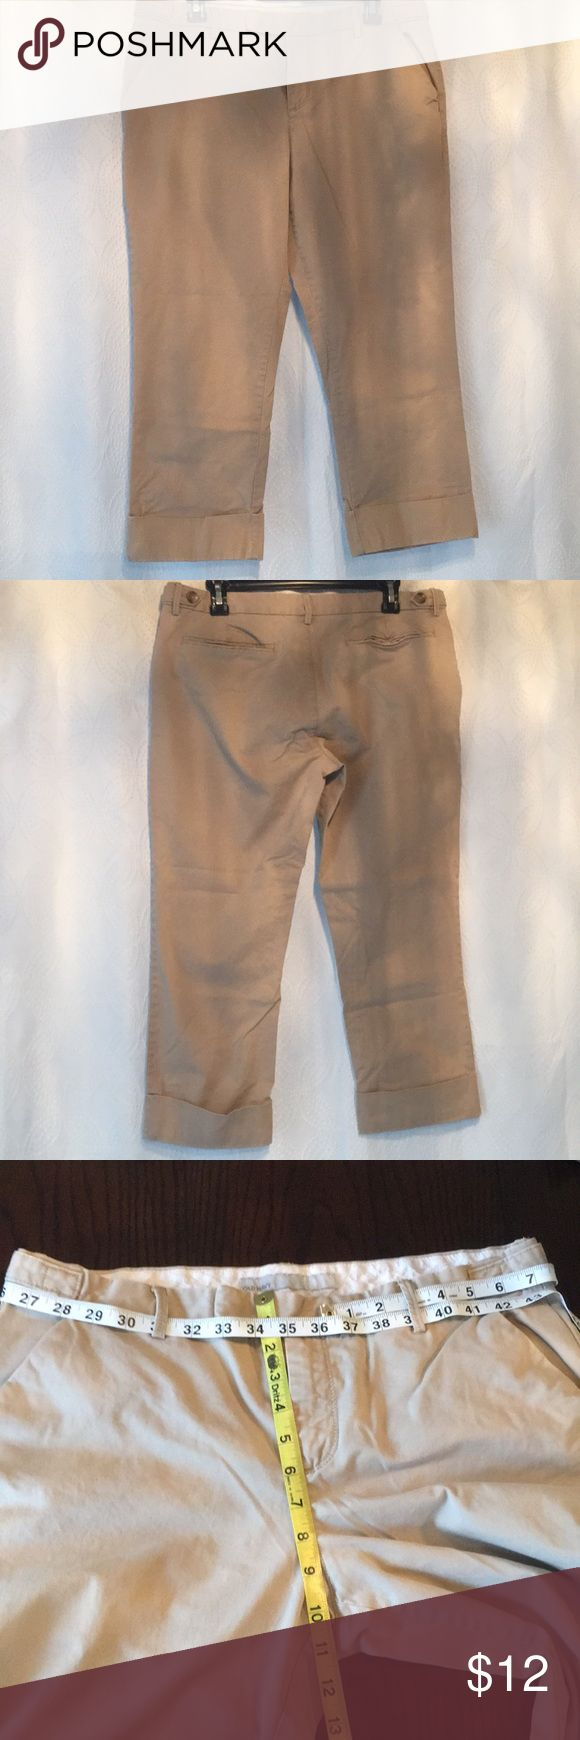 Old Navy khaki capris Size 12, no stains or rips, smoke free home in excellent used condition. Cuffed at hem and has front and back pockets. 97% cotton, 3% spandex. Bundle for private offer or reduced shipping. If additional measurements or questions please let me know. Old Navy Pants Capris